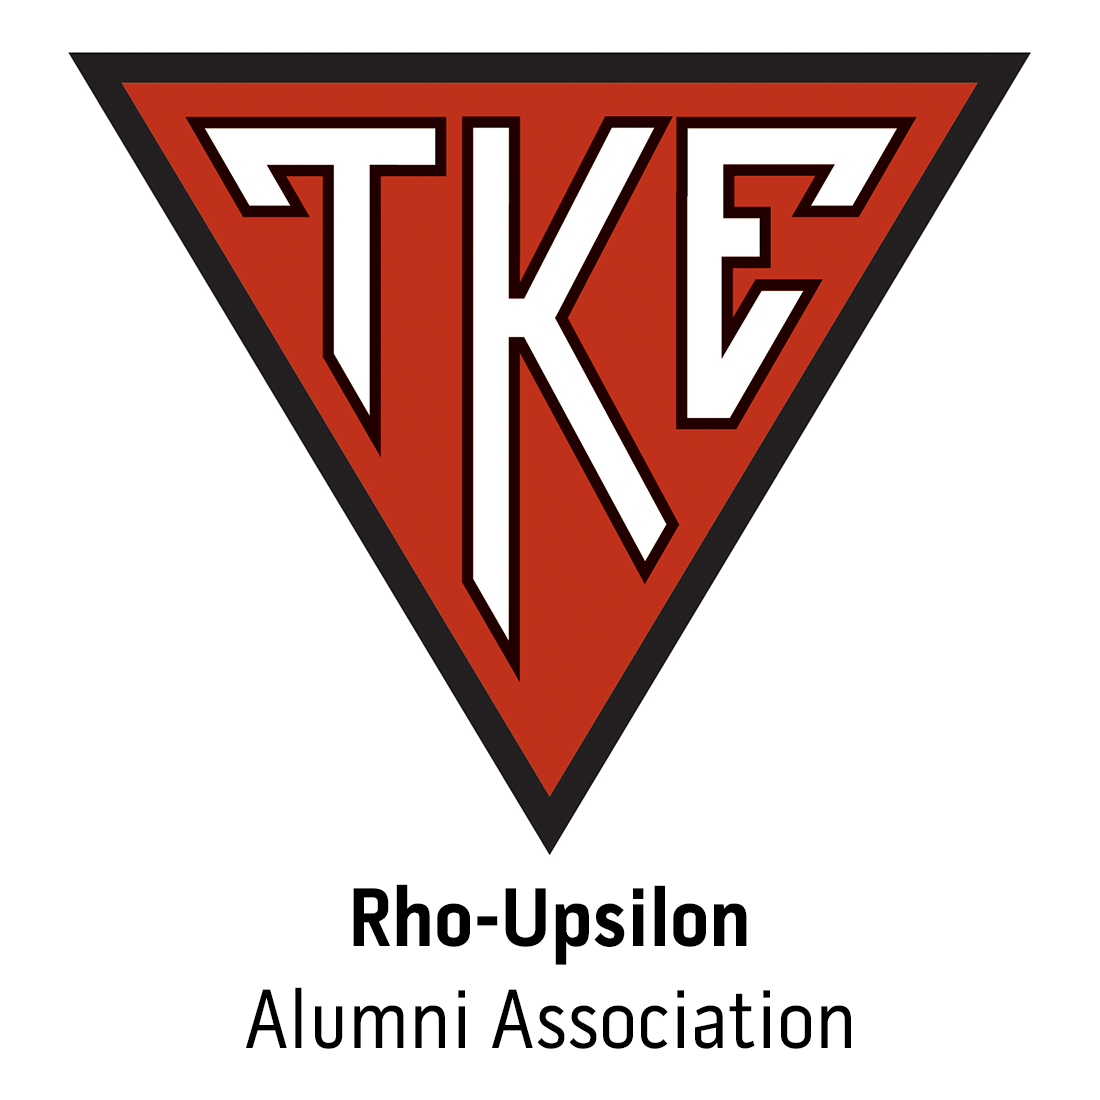 Rho-Upsilon Alumni Association at Franklin College